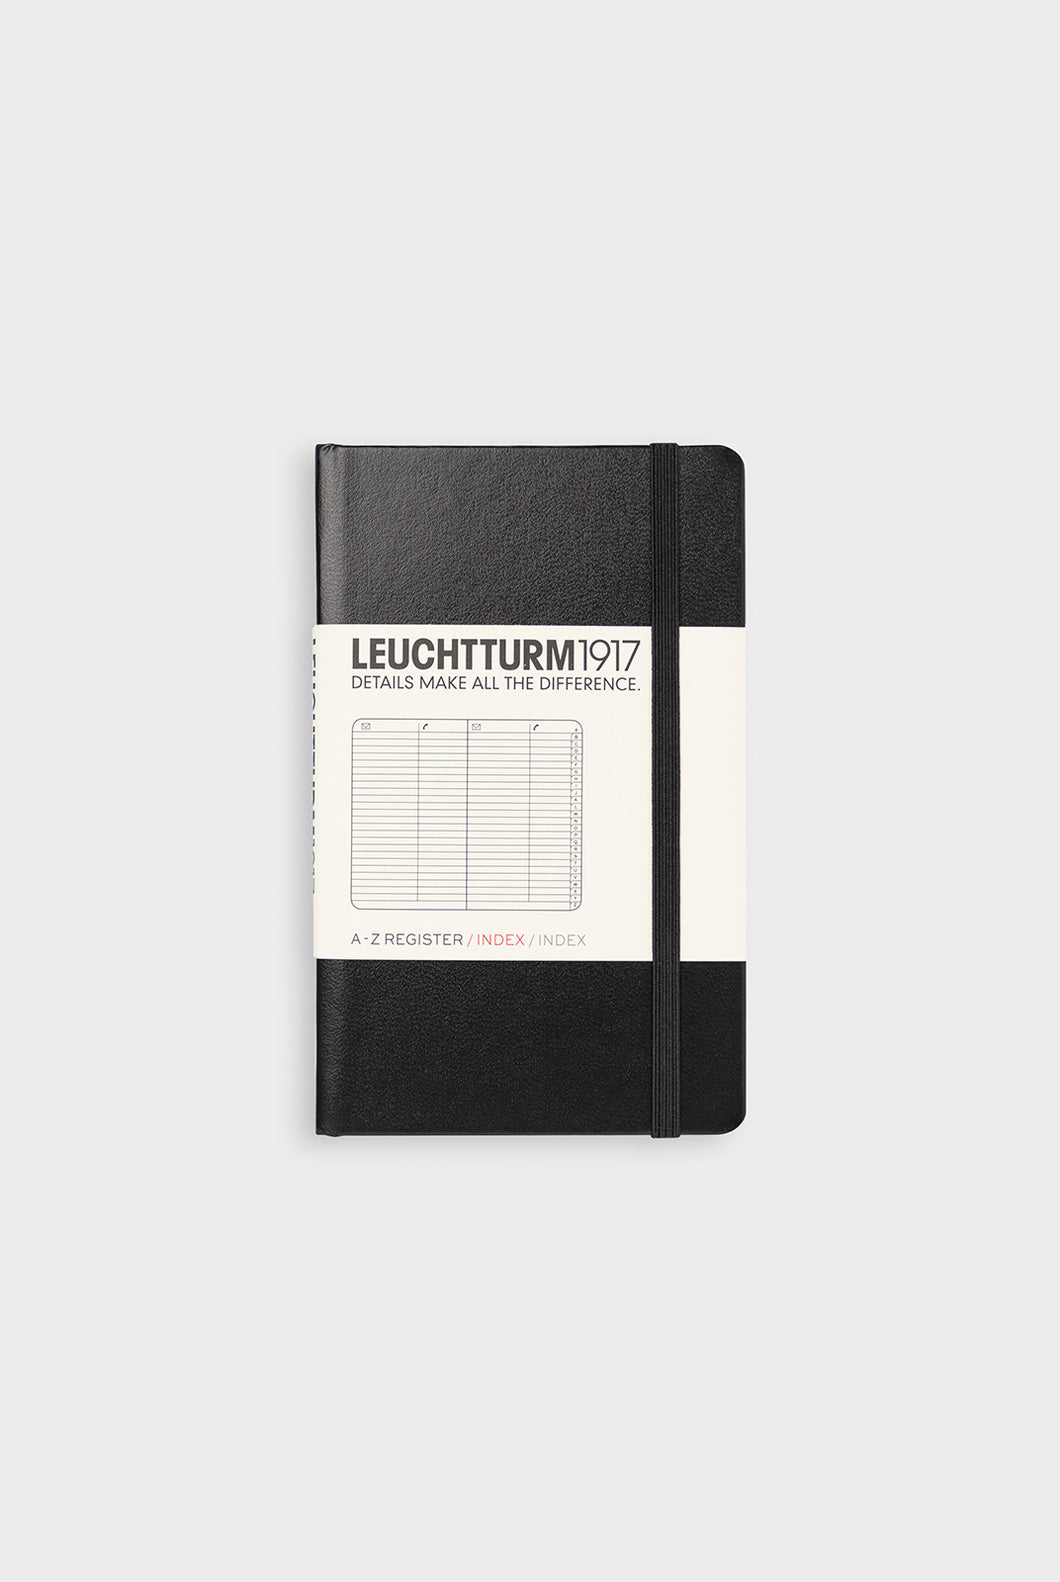 Leuchtturm1917 - Address Book - Pocket (9x15cm) - Hard Cover - Black